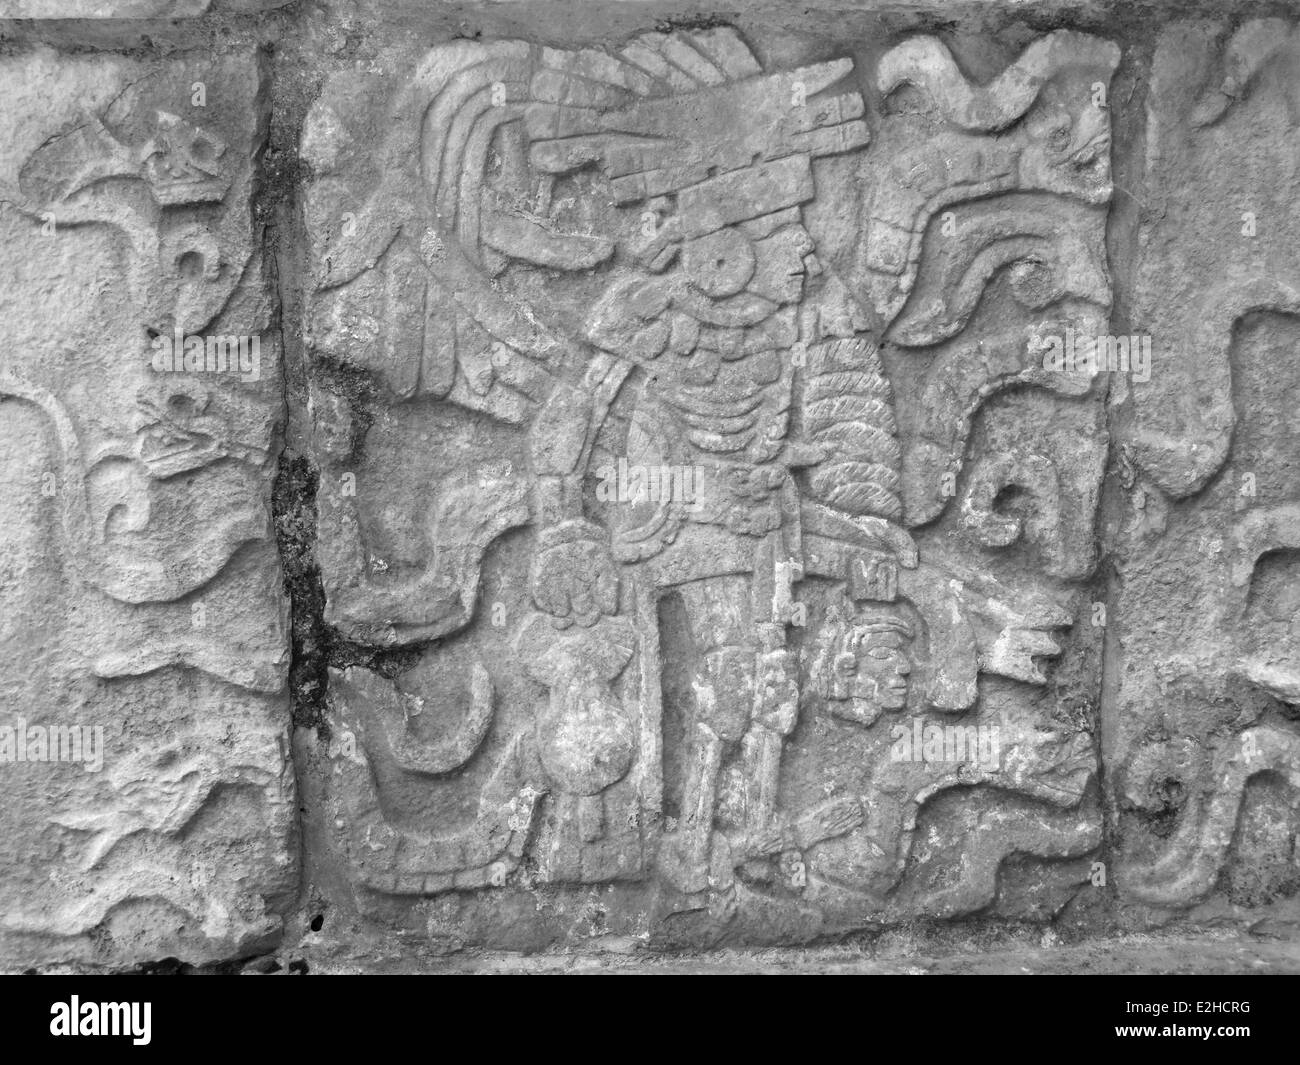 stone relief detail in Chichen Itza, a archaeological site in Yucatan, Mexico - Stock Image